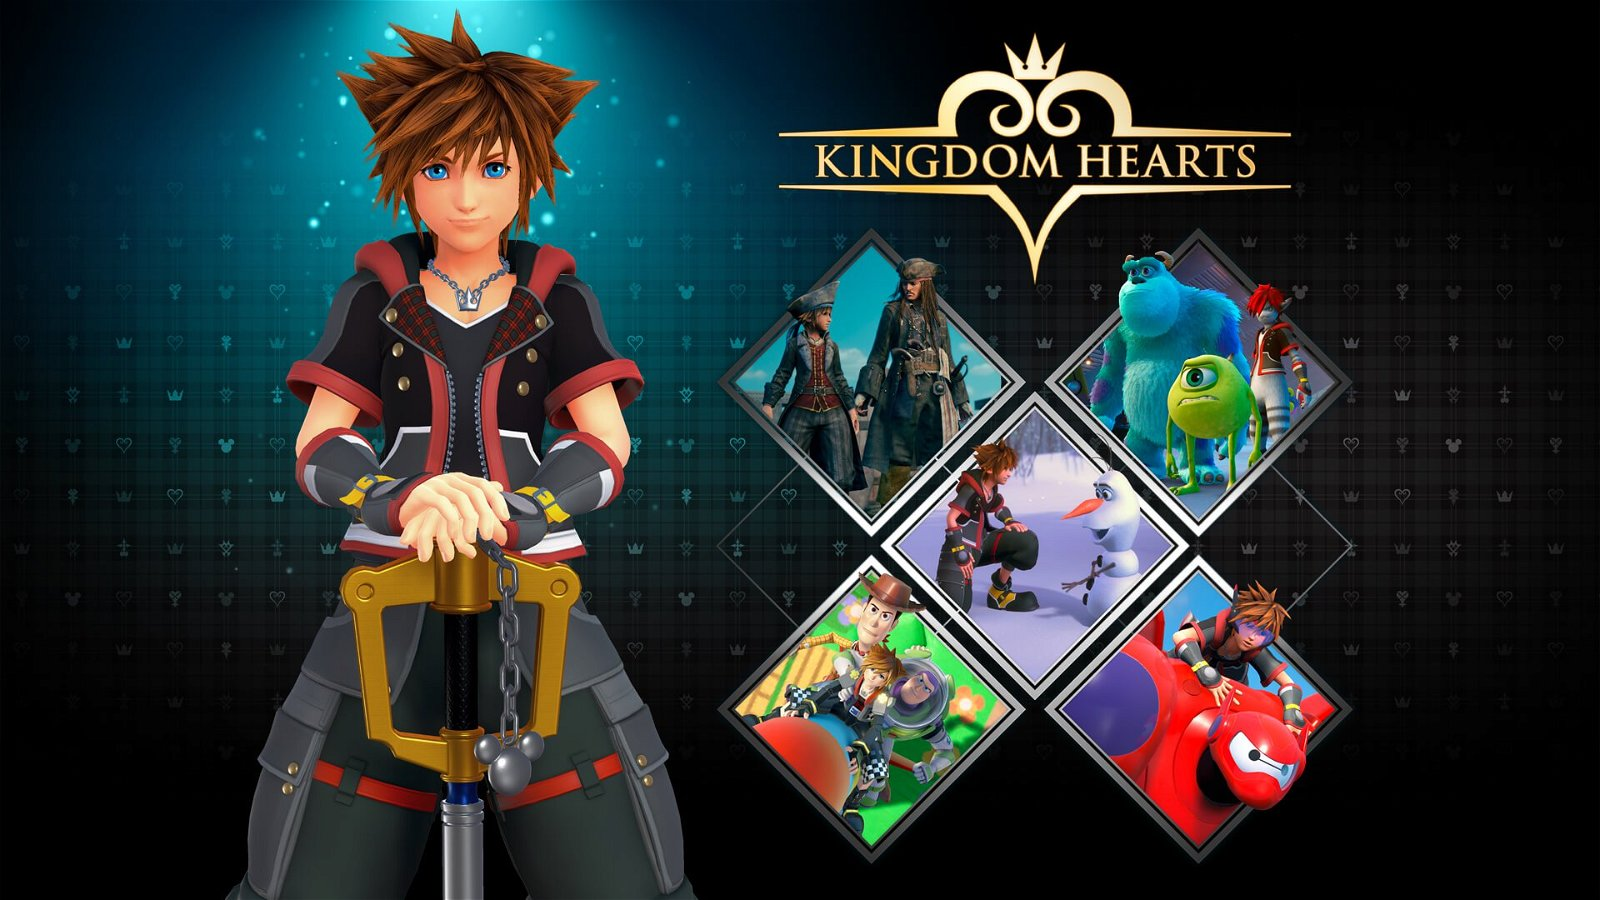 Kingdom Hearts 3 Re Mind DLC Trailer Released Ahead of TGS